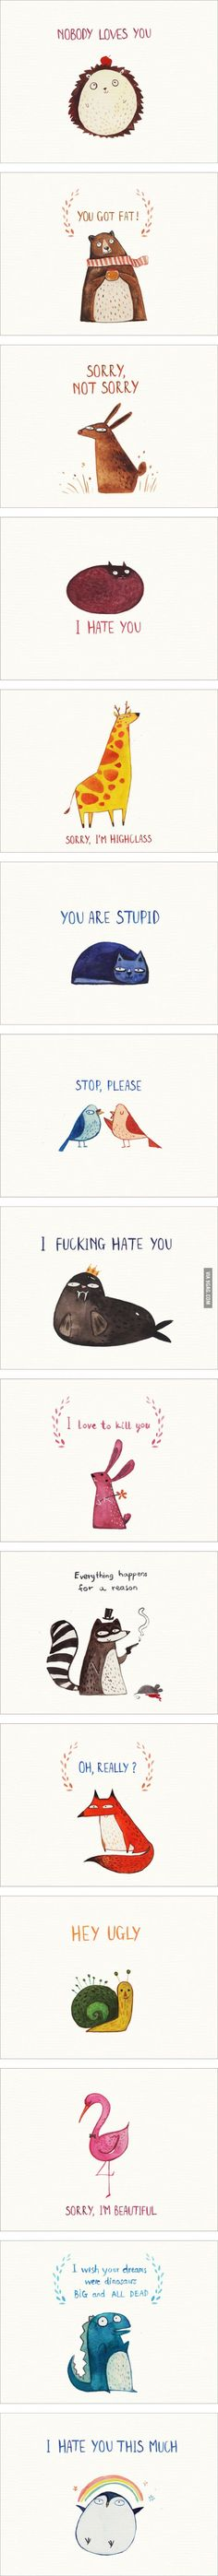 15 Cute Postcards For Your Enemies. Best part is u can give it to your BFFs too lol